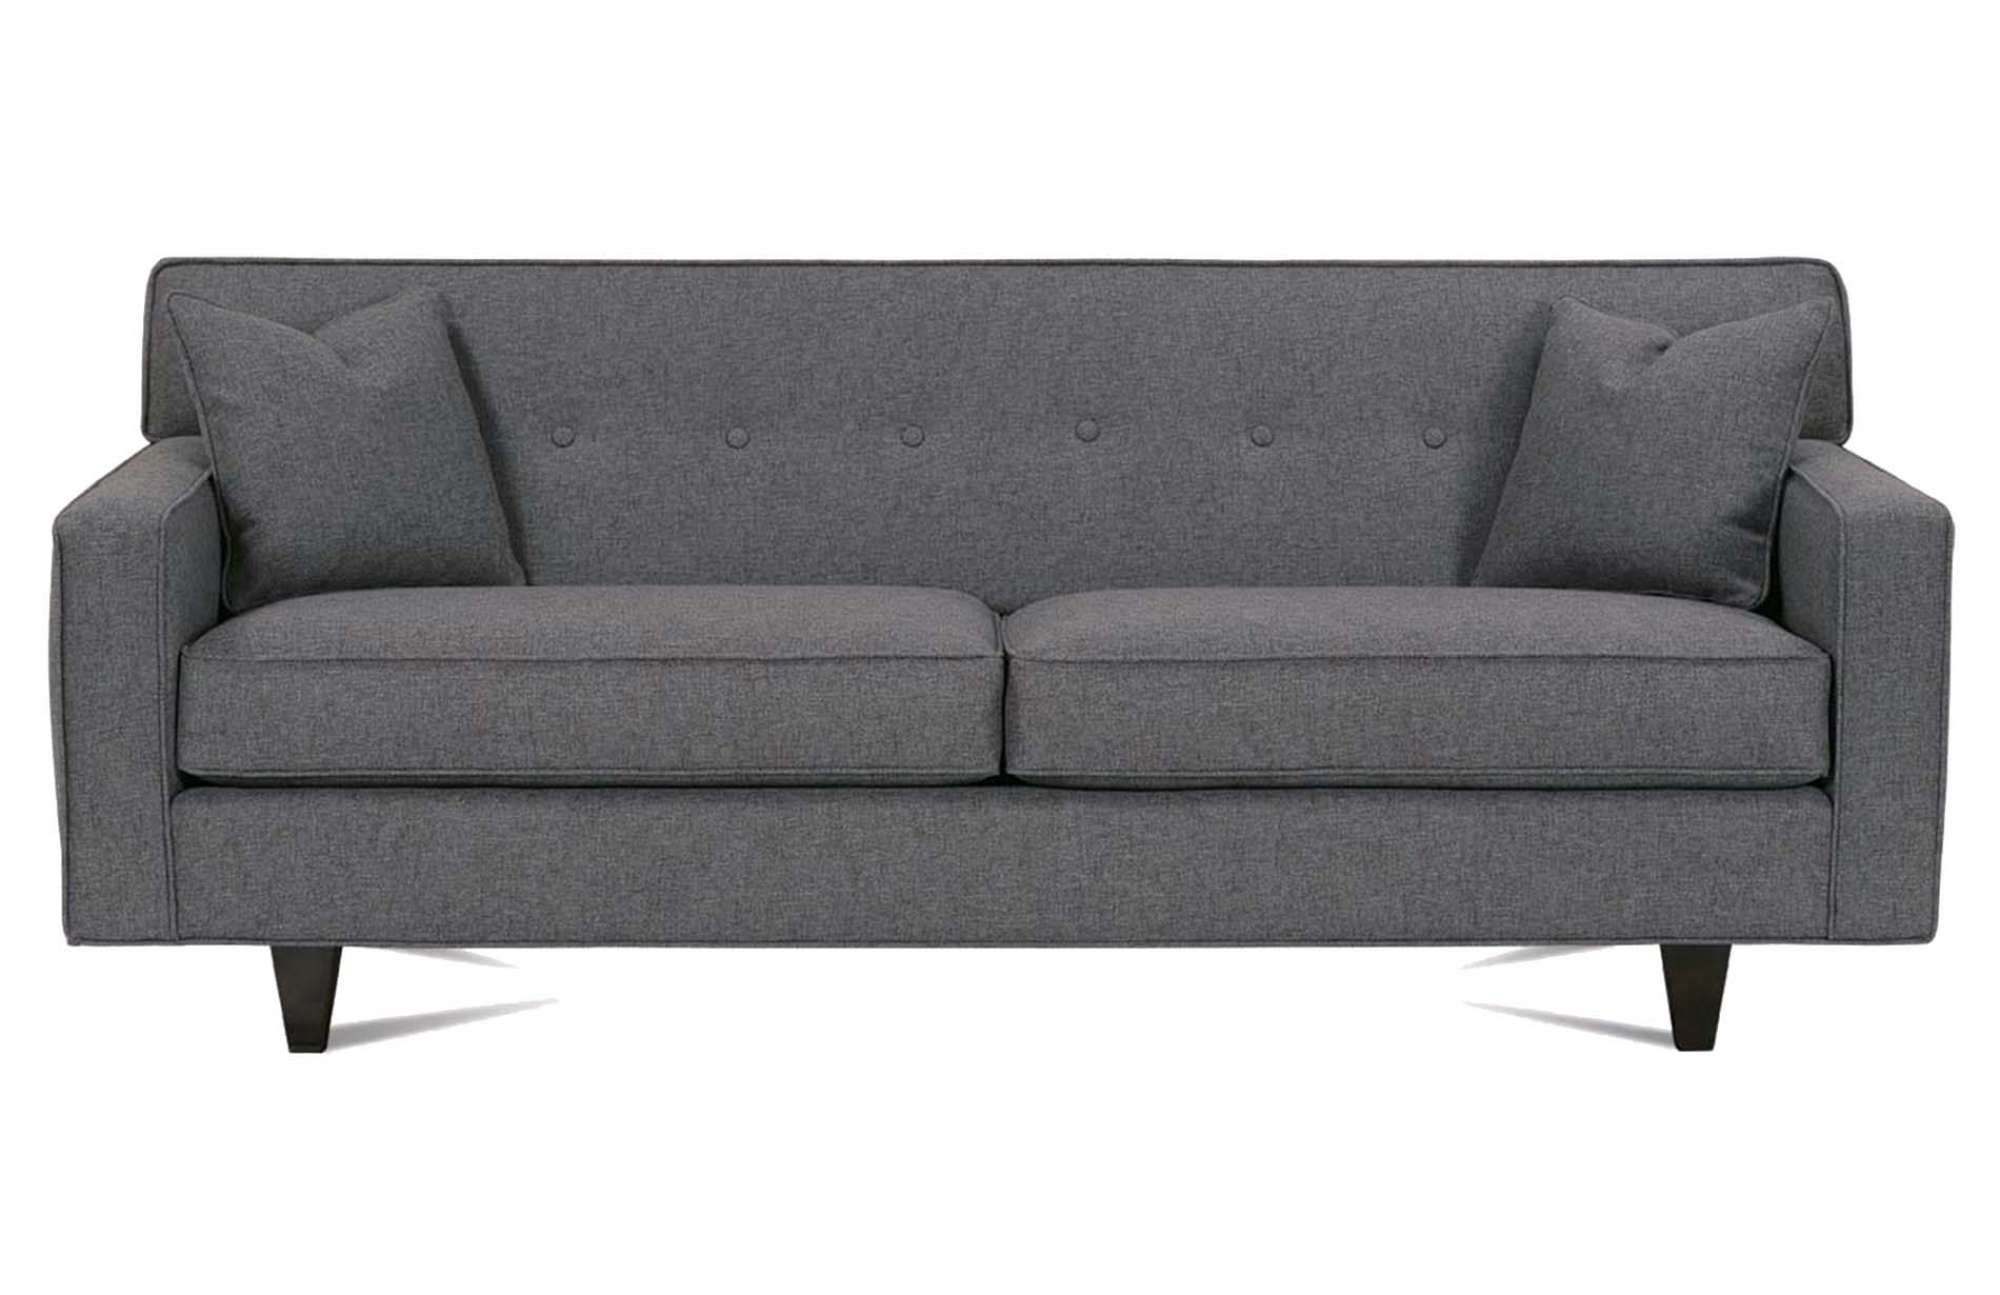 The dorset 88 sofa is a modern luxury design that places an emphasis on seating space the Modern luxury sofa